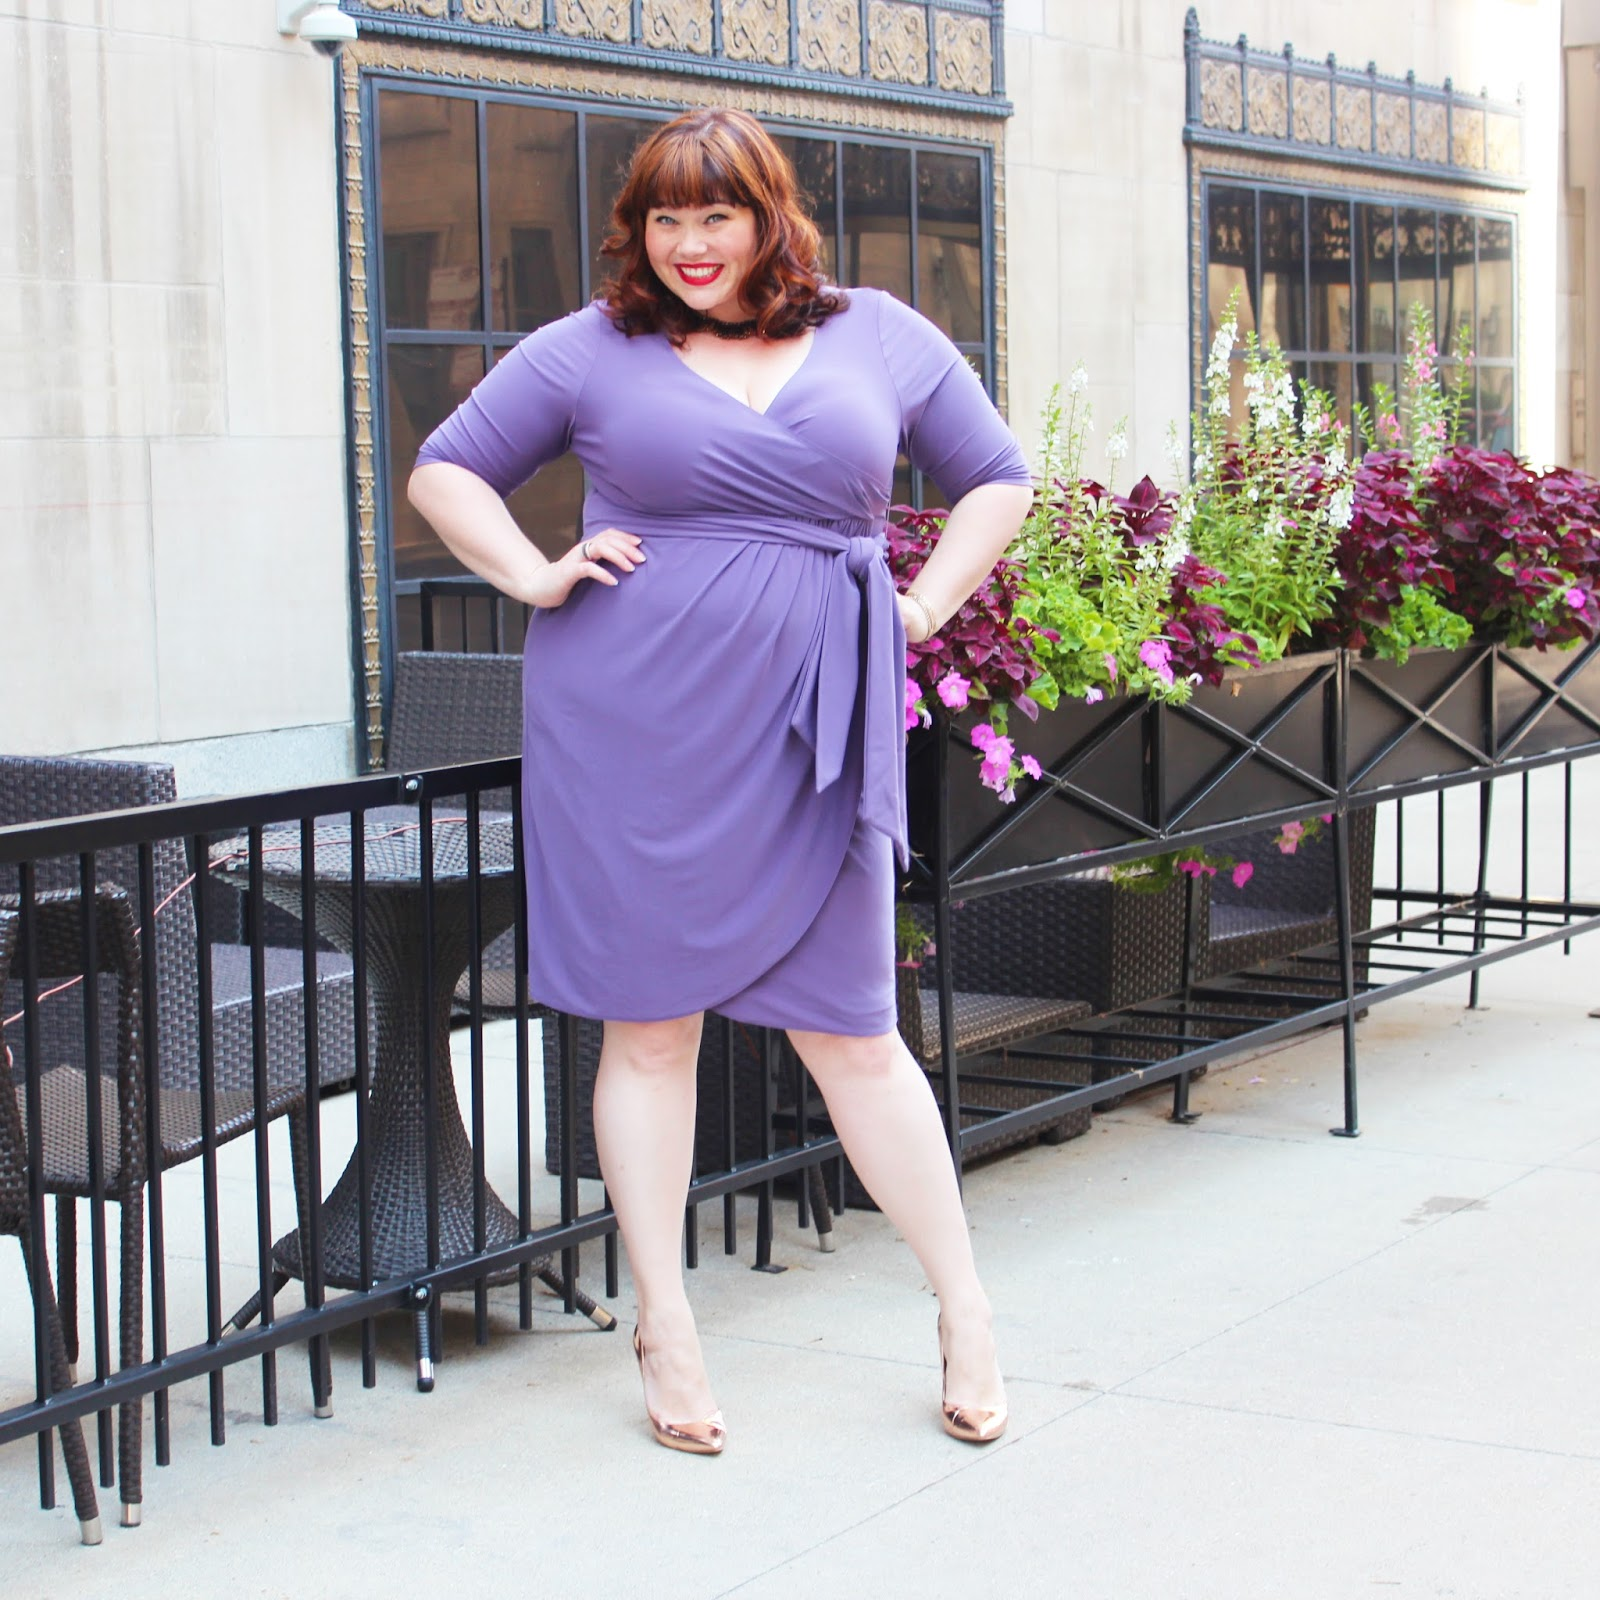 Plus Size Blogger Amber from Style Plus Curves models a lavender purple plus size faux wrap dress from Kiyonna